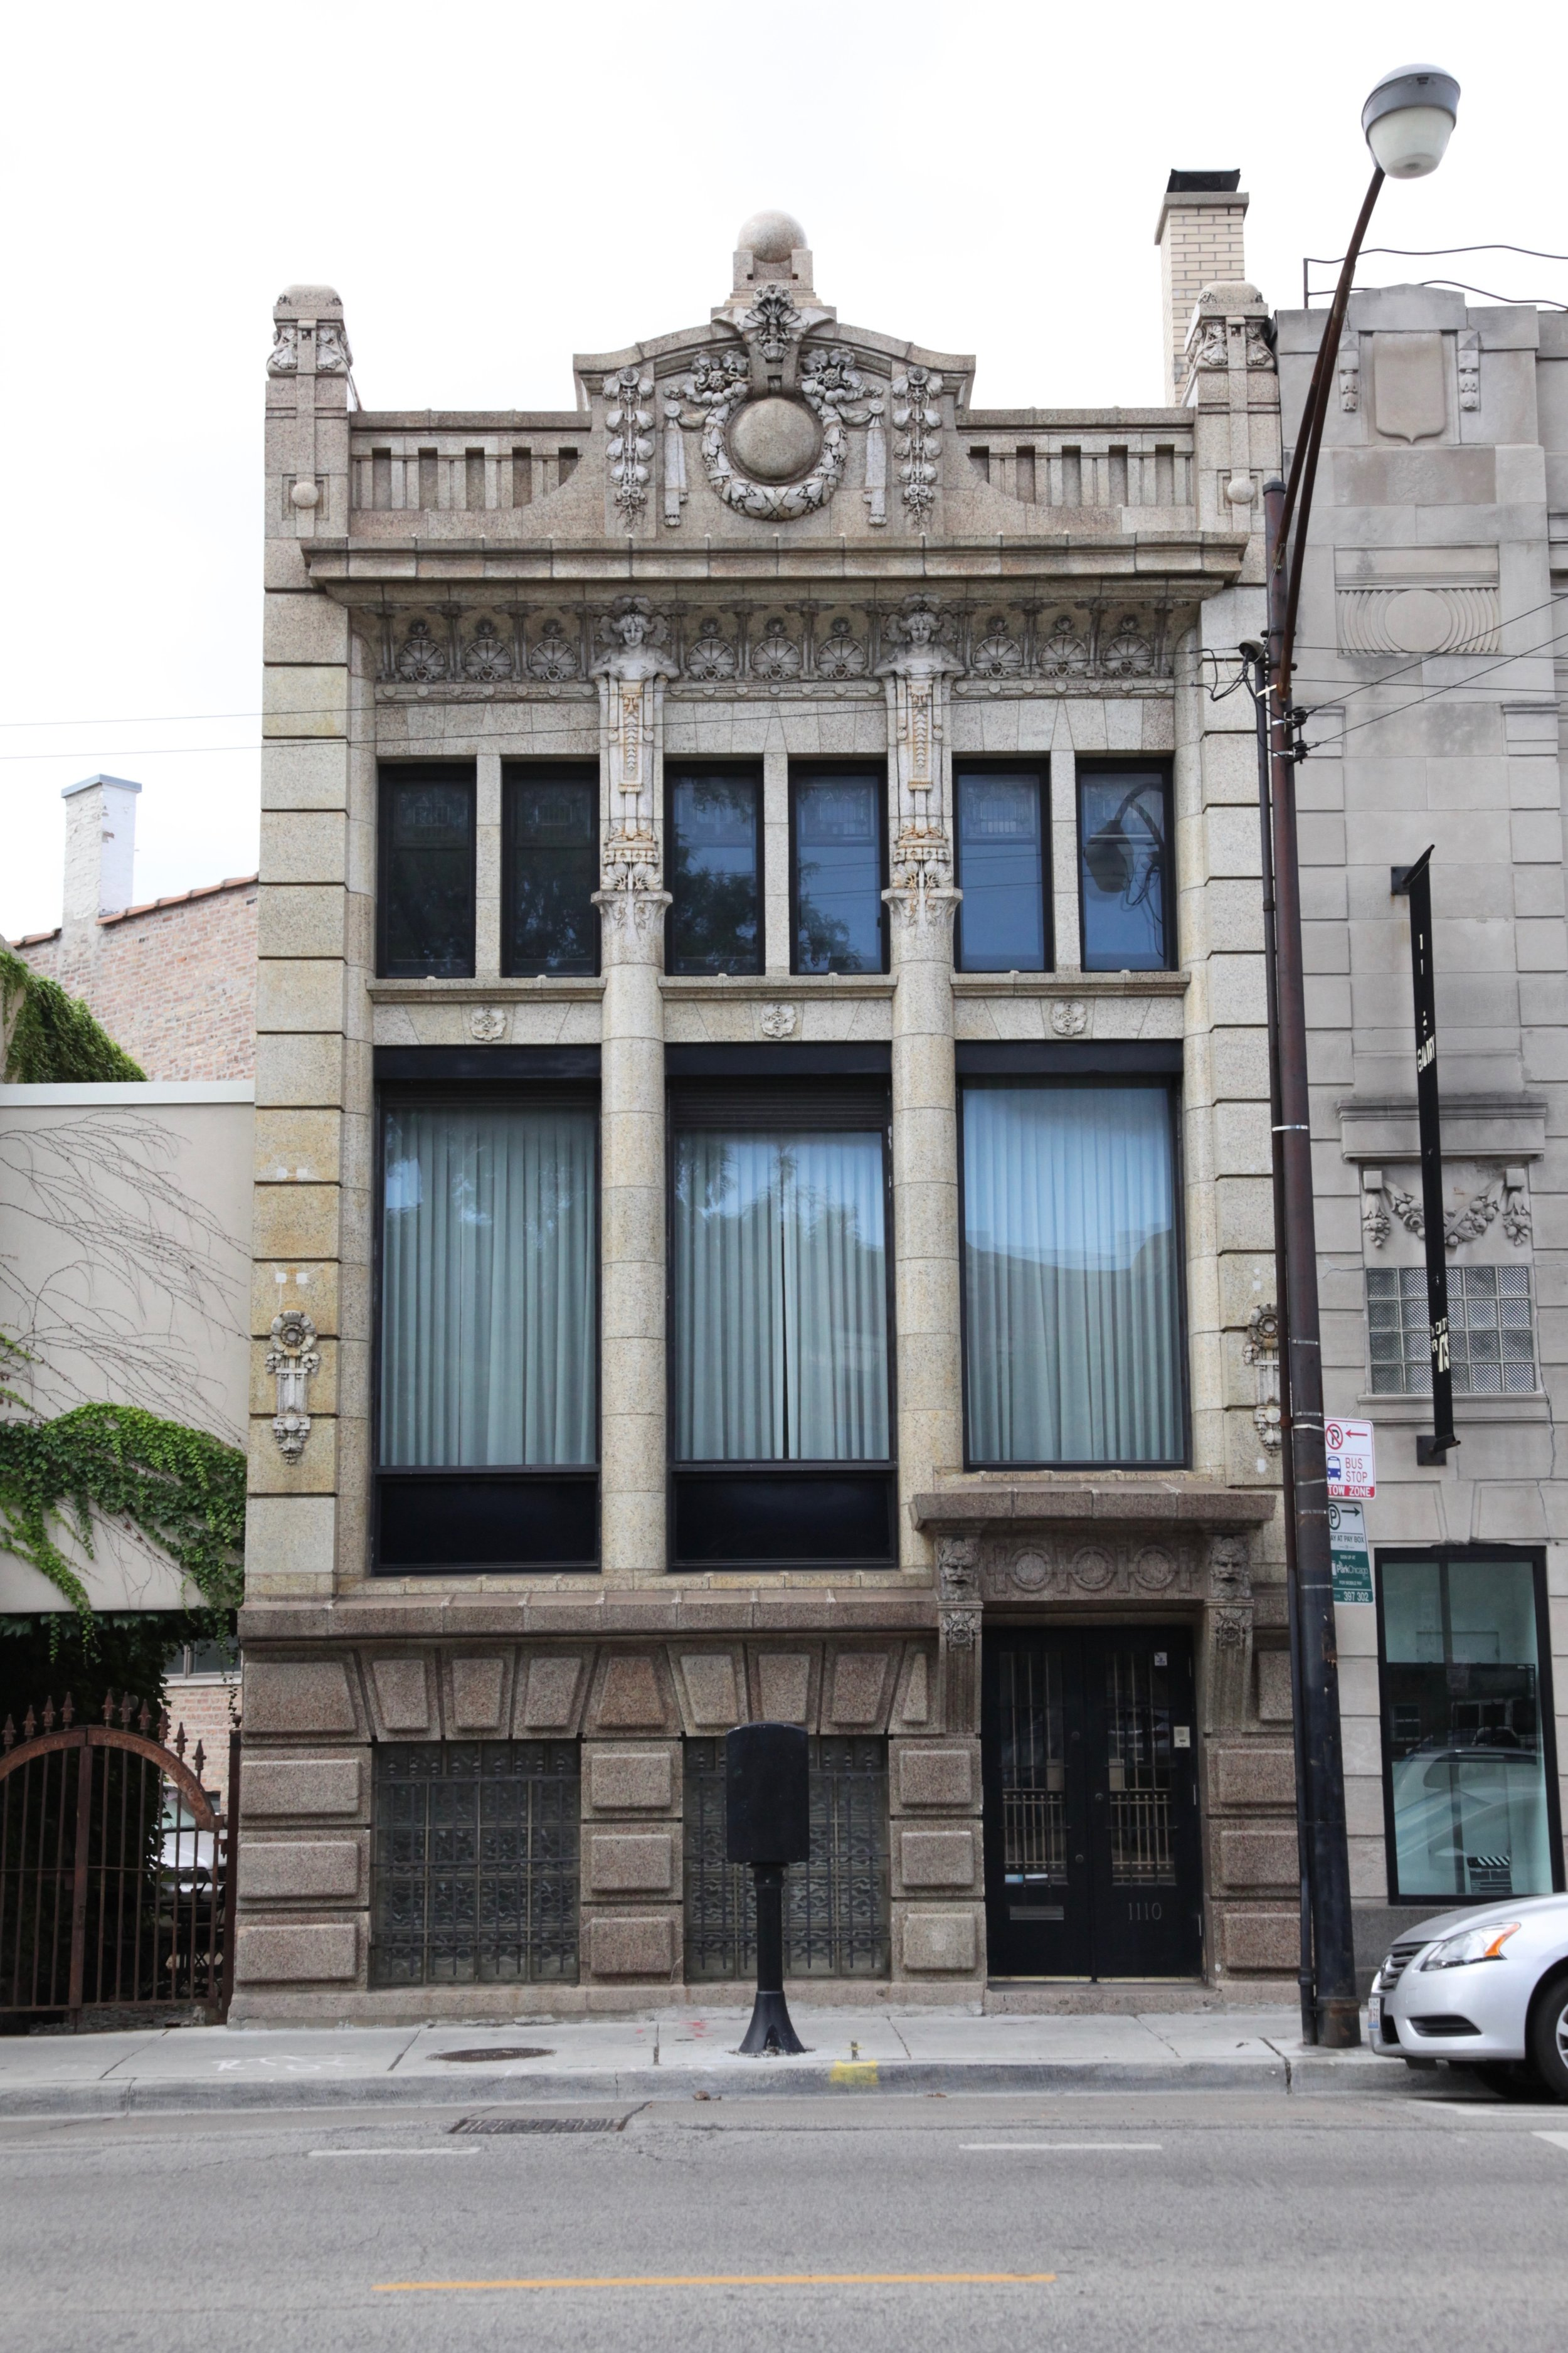 Facade of building designed by   architects Frohmann & Jebsen with terra cotta fabricated by the  Northwestern Terra Cotta Company in Chicago